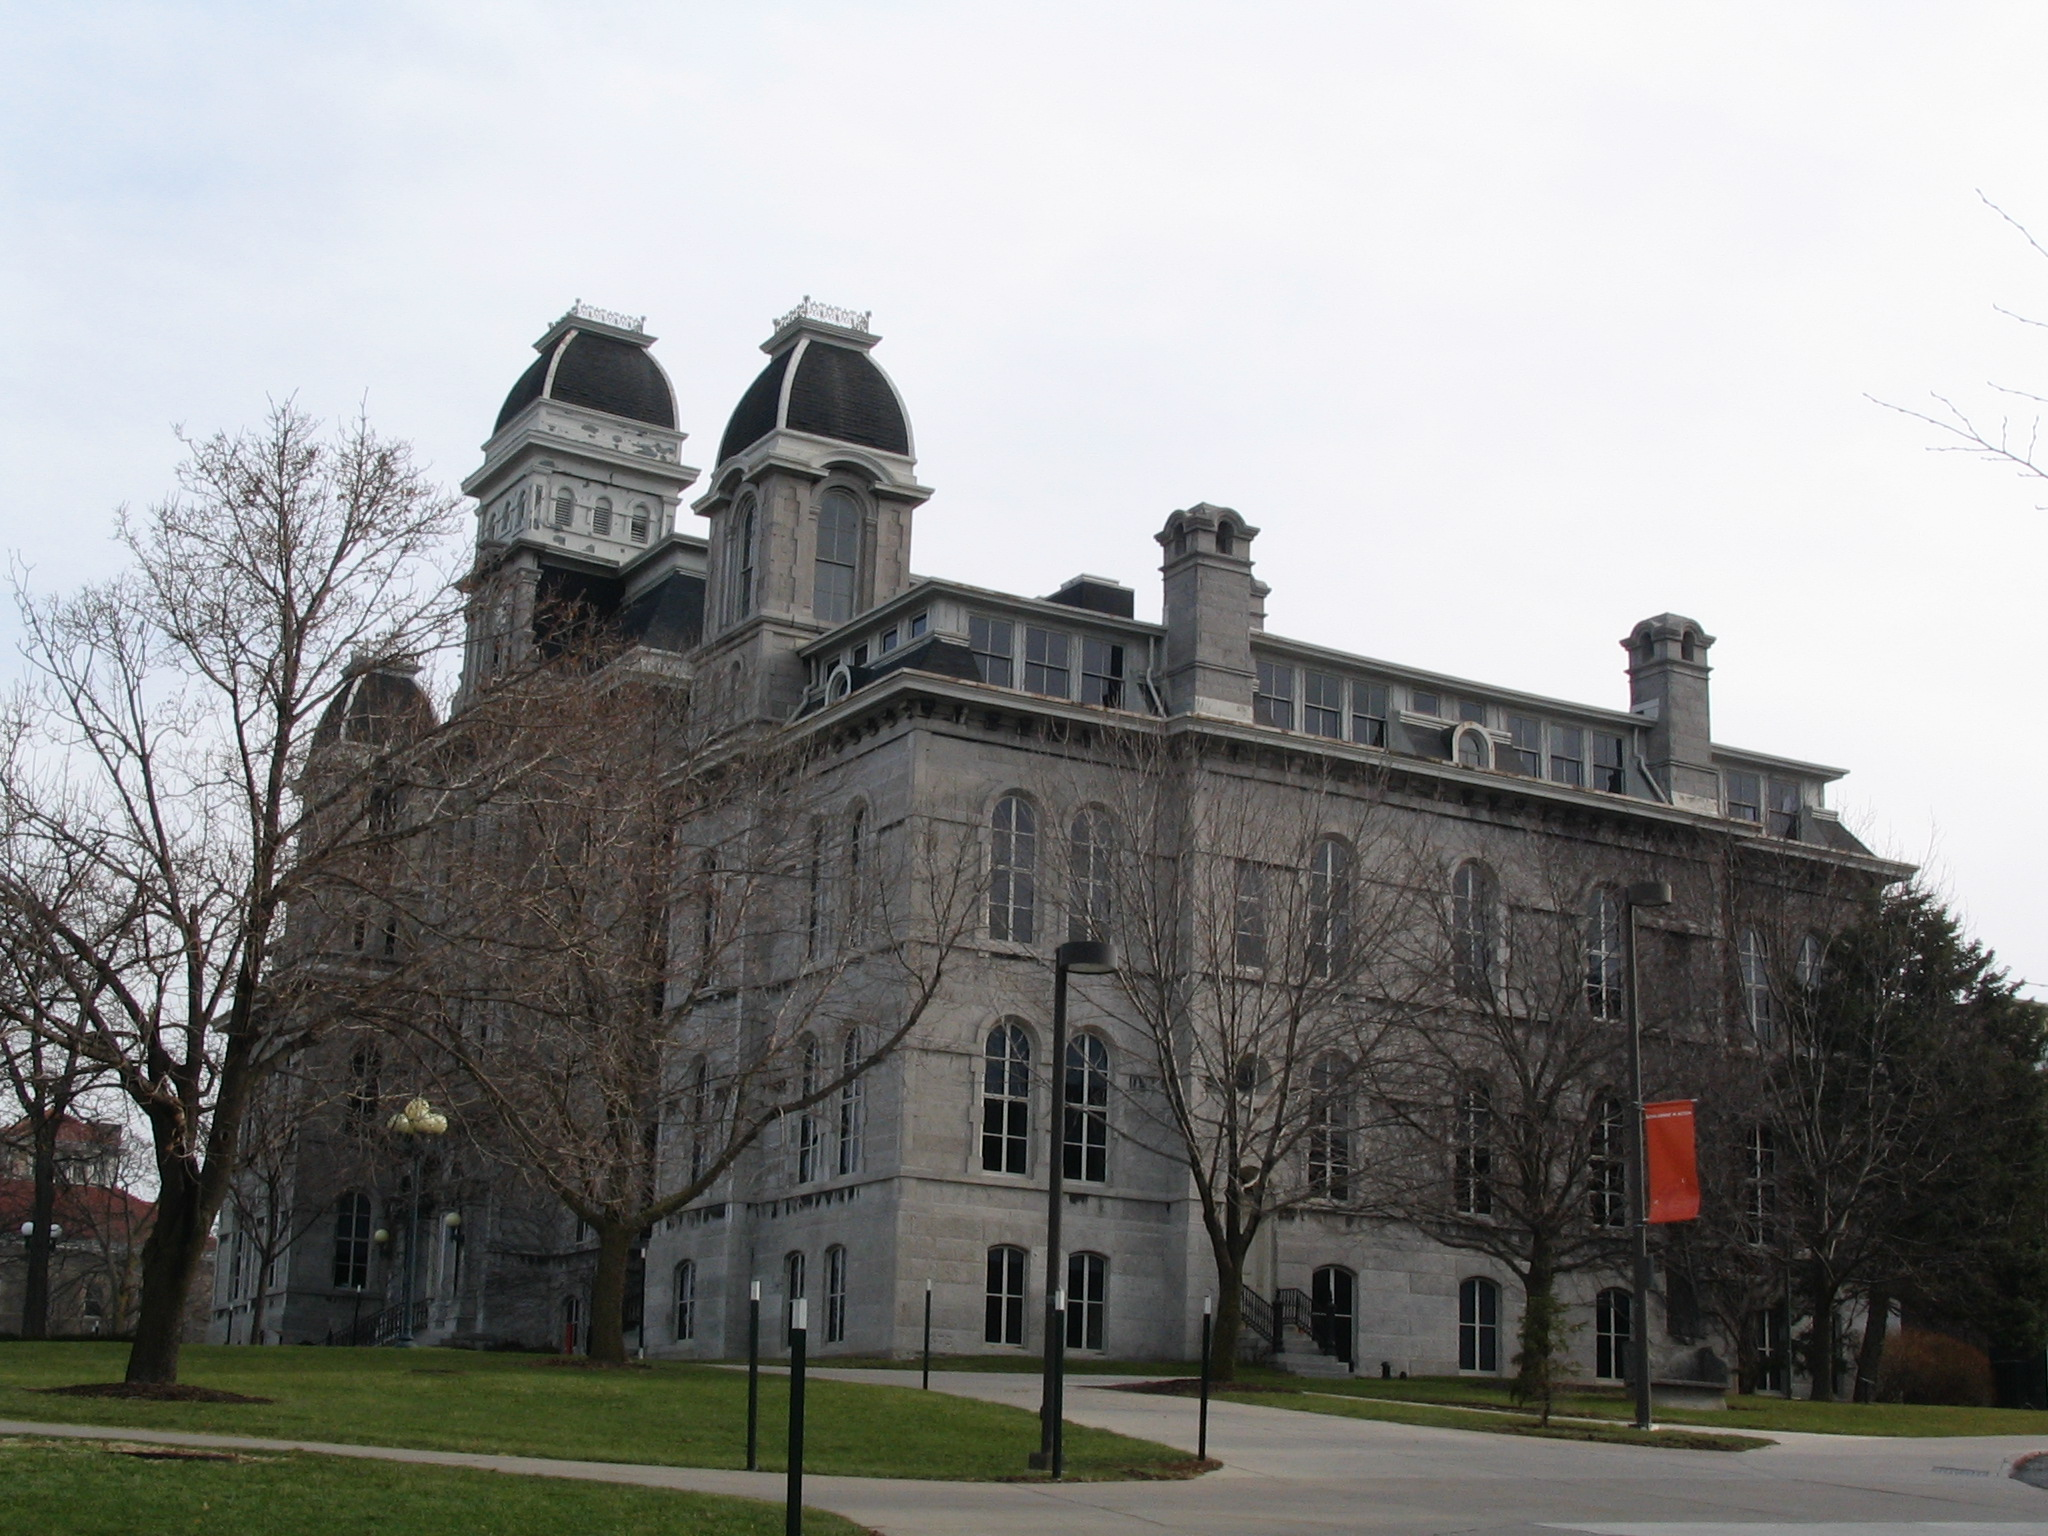 syracuse university writing center No matter which form of support you choose, writing consultants will work with you at any stage of your writing process syracuse university writing center.